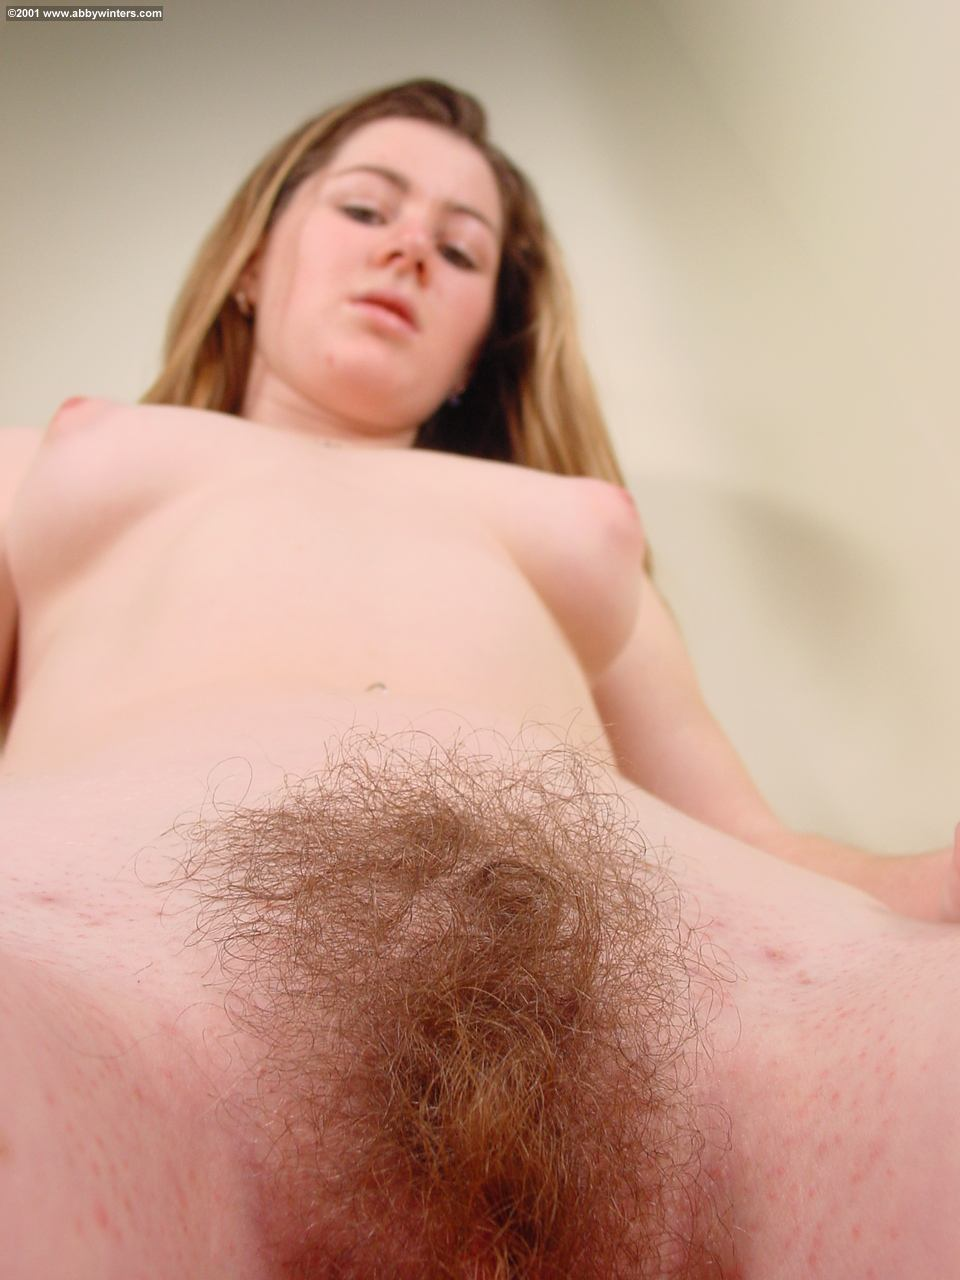 abby winters hairy Search - XVIDEOSCOM